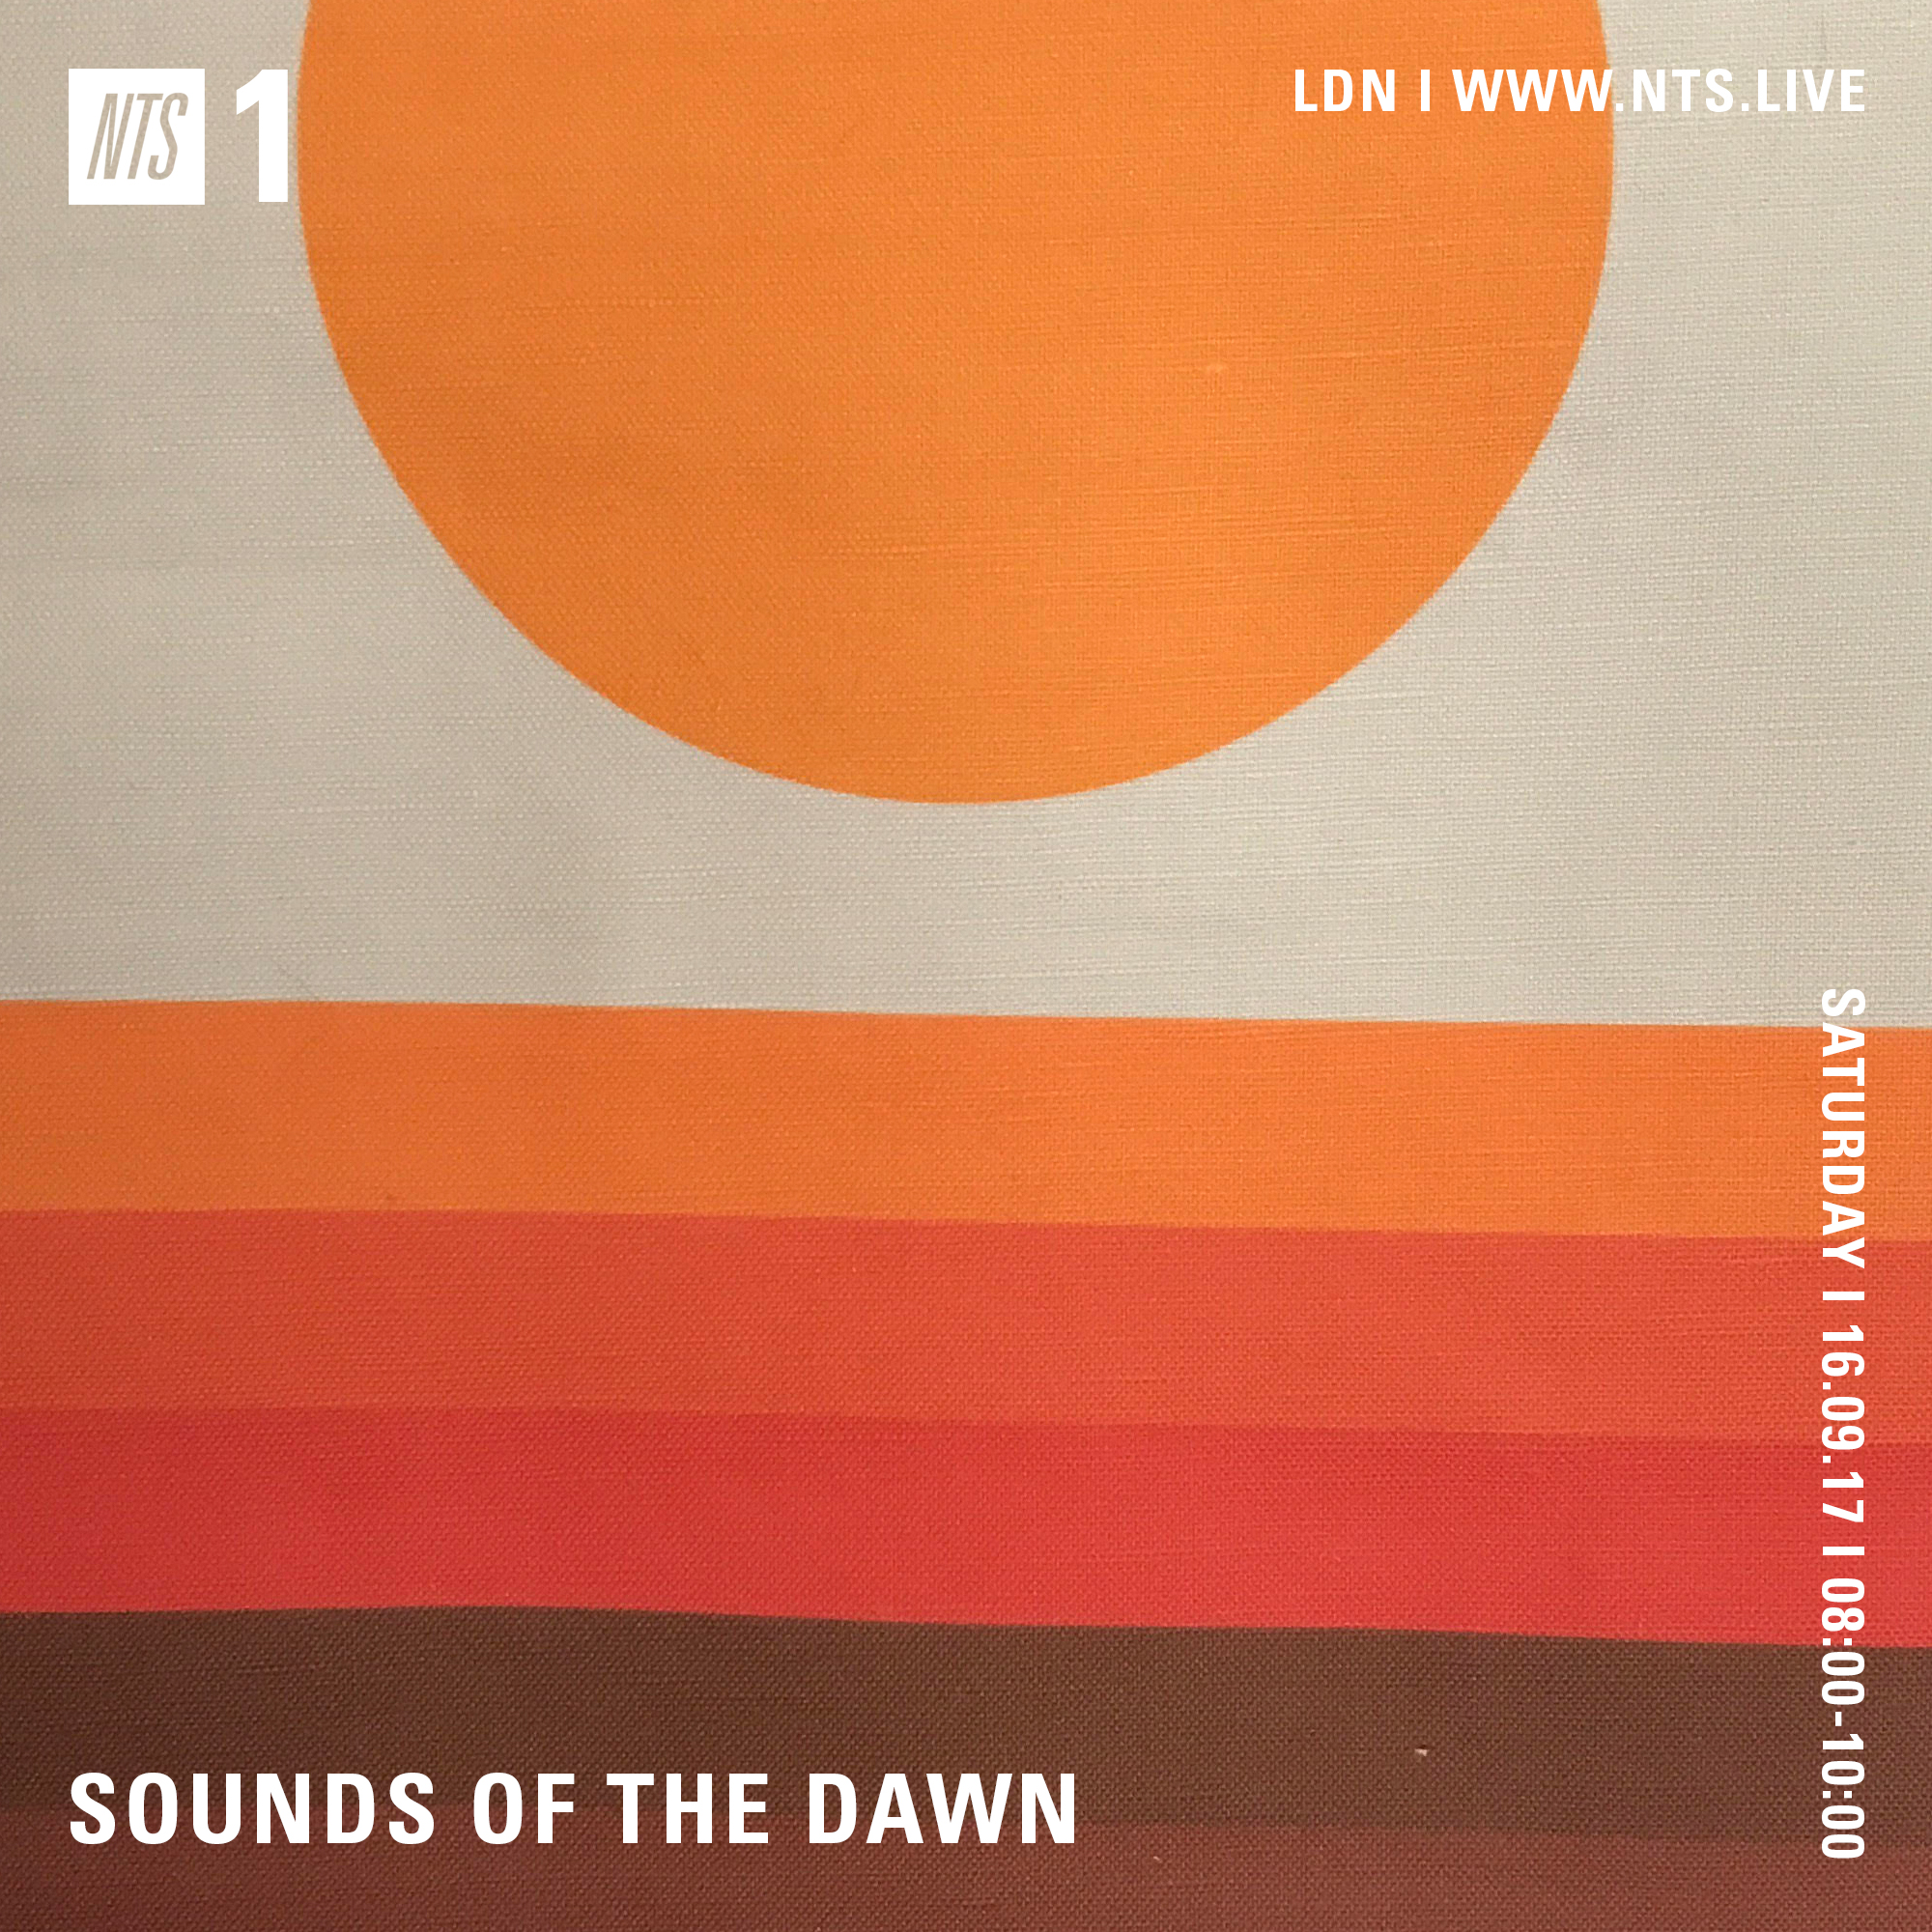 NTS Radio – Sounds of the Dawn